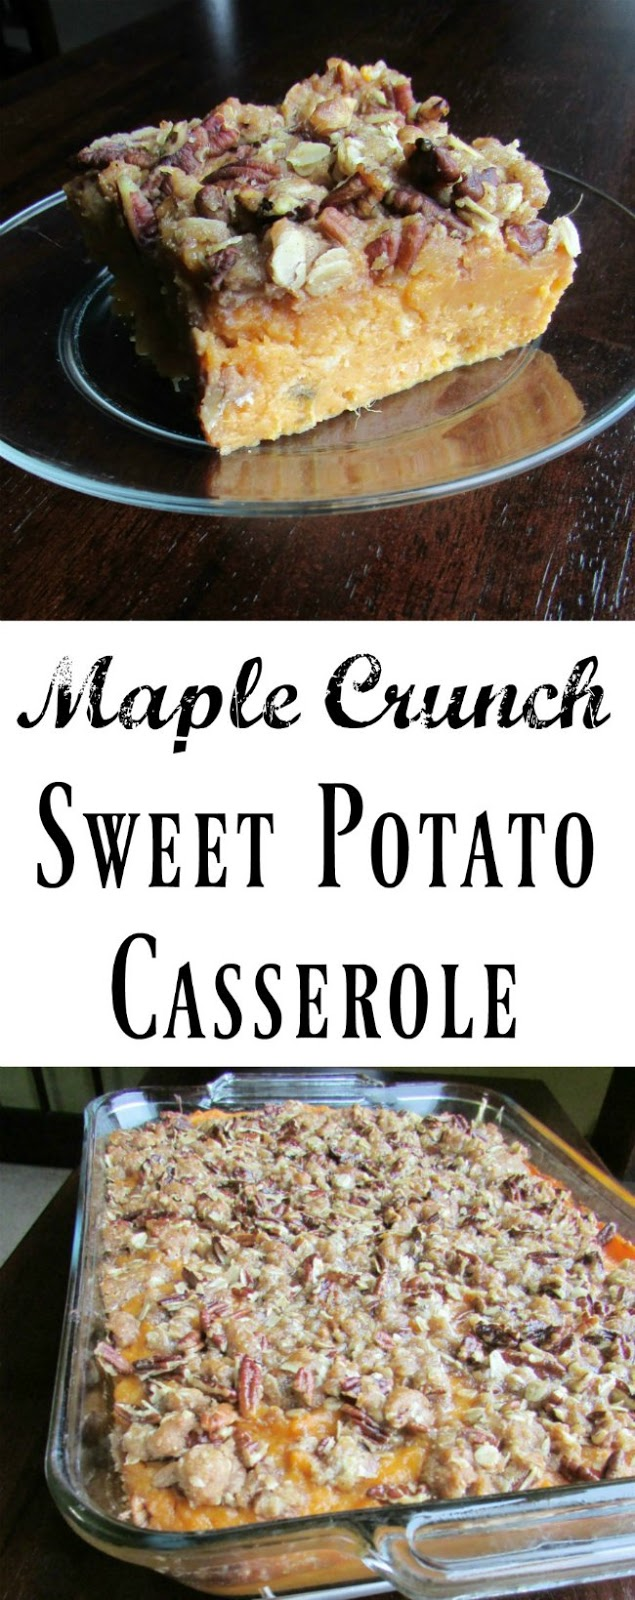 This is the perfect holiday side dish. Thanksgiving, Christmas and Easter are all begging for this delicious twist on a classic side dish.